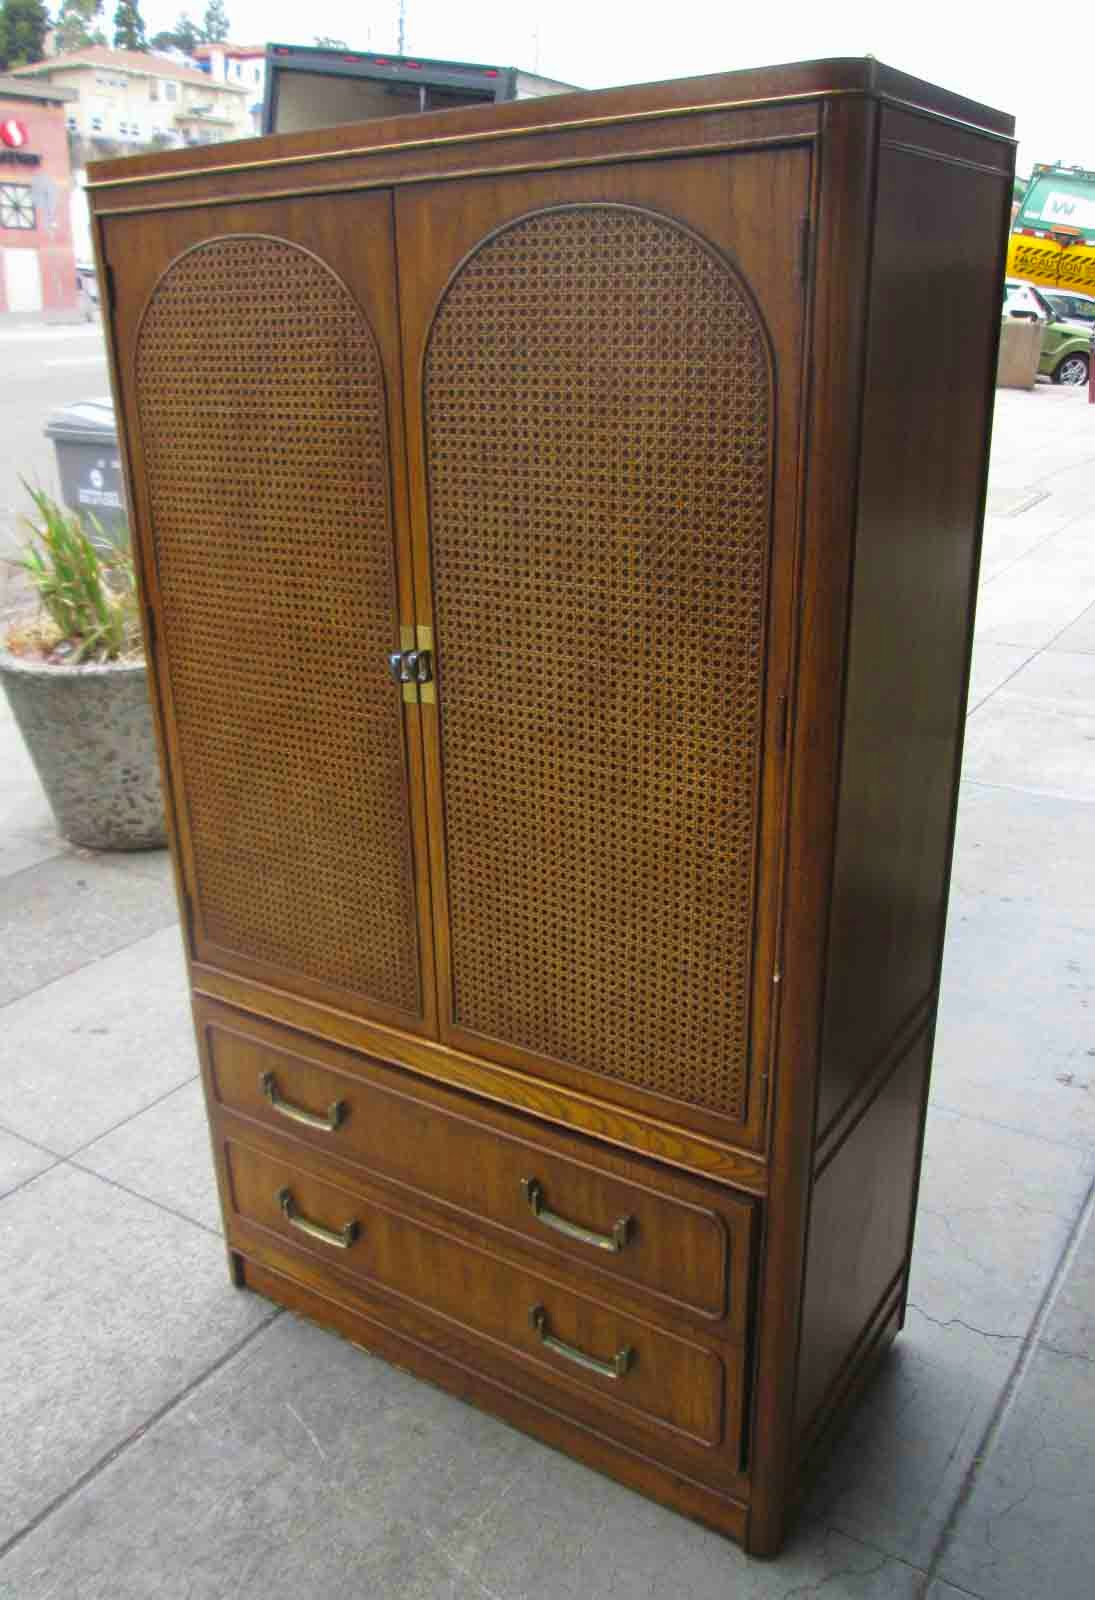 Marvelous photograph of UHURU FURNITURE & COLLECTIBLES: SOLD Clothing Armoire $80 with #6B4827 color and 1095x1600 pixels